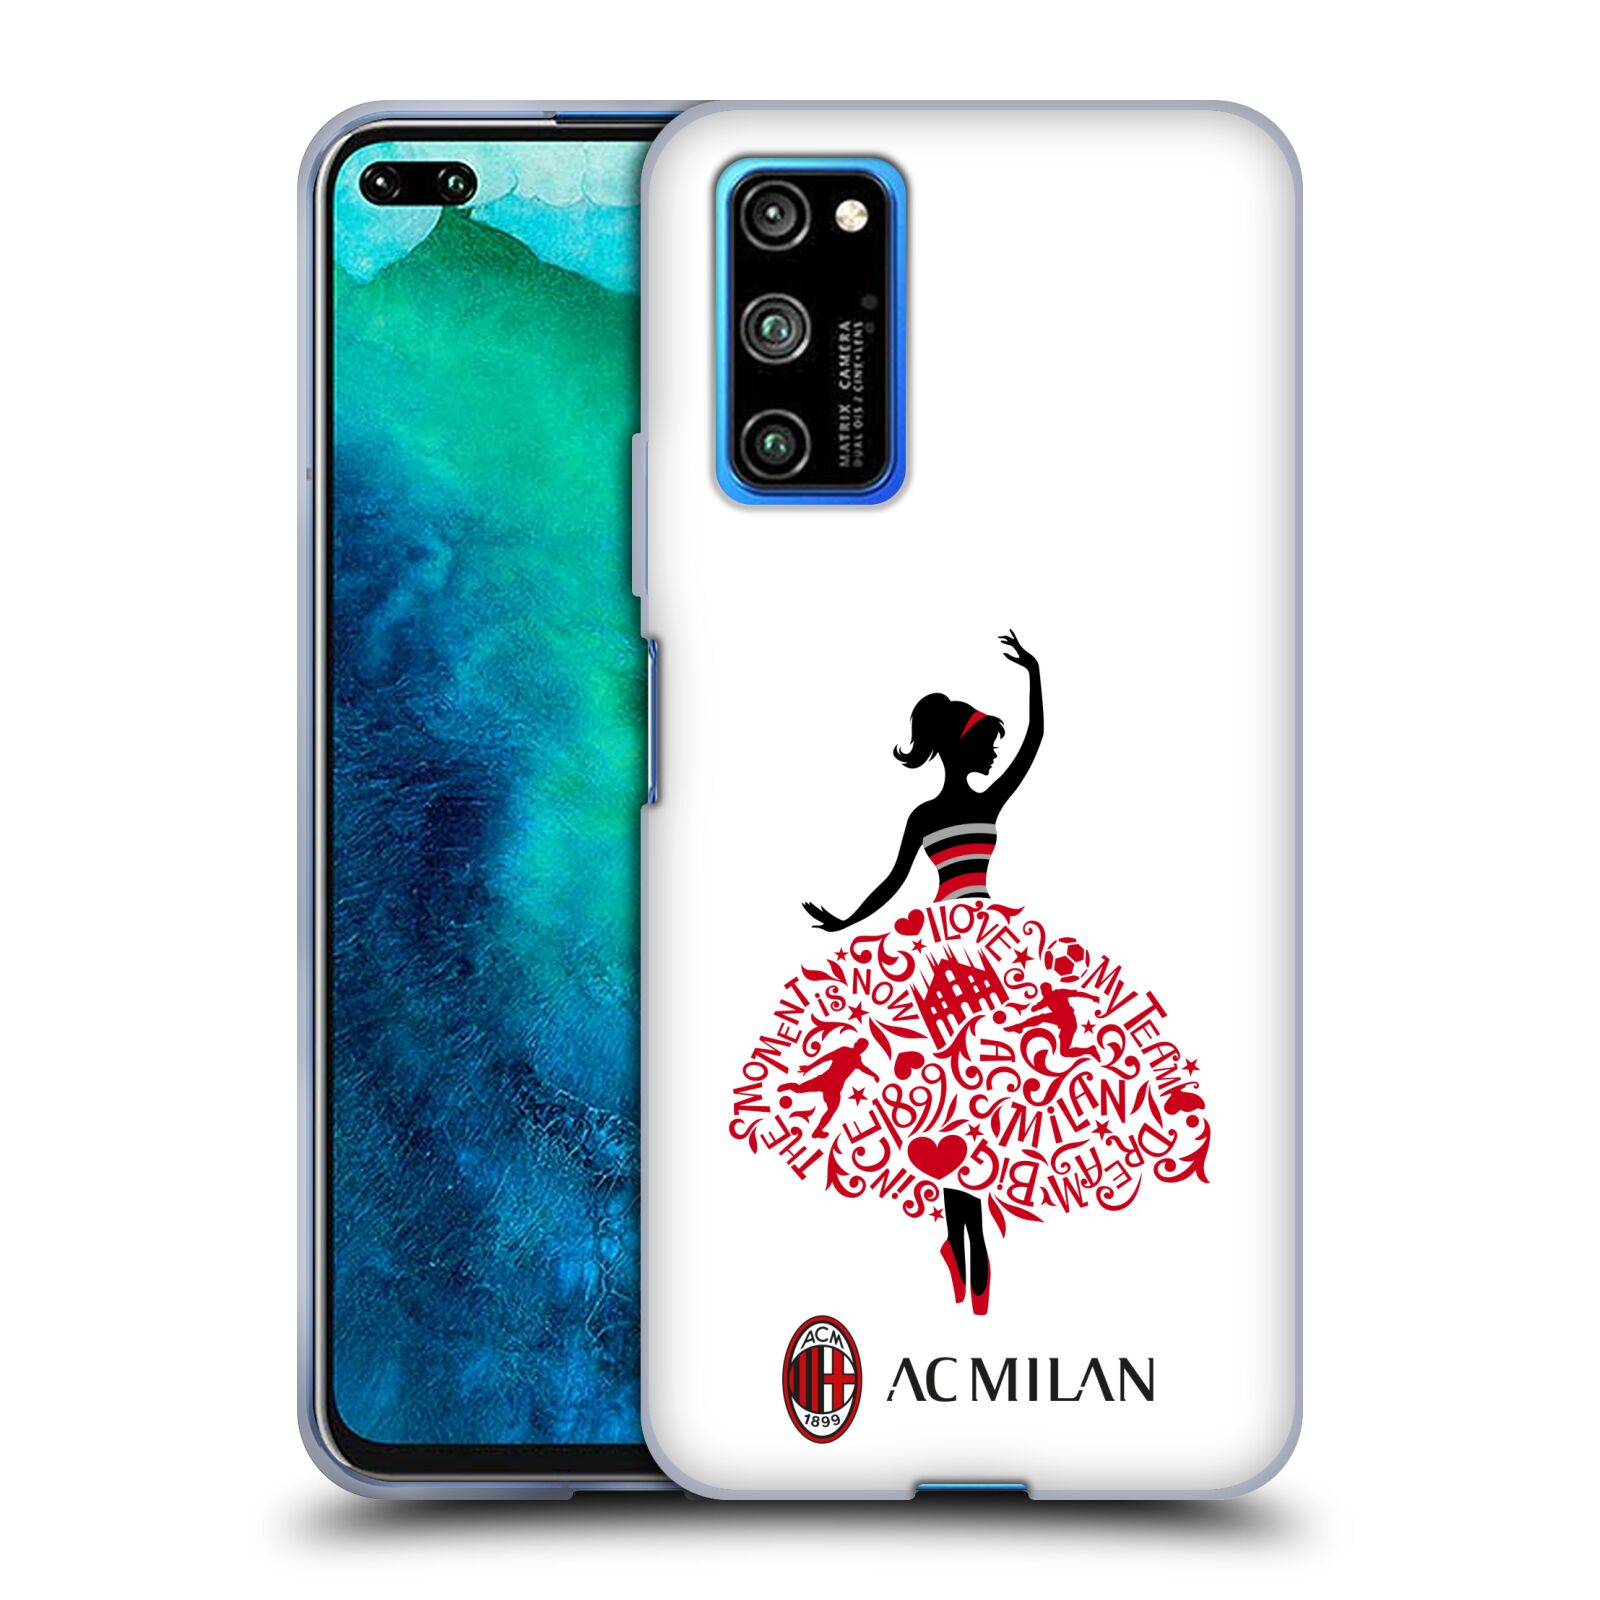 Official AC Milan 2018/19 Children Dream Big Gel Case for Huawei Honor V30 Pro / View 30 Pro